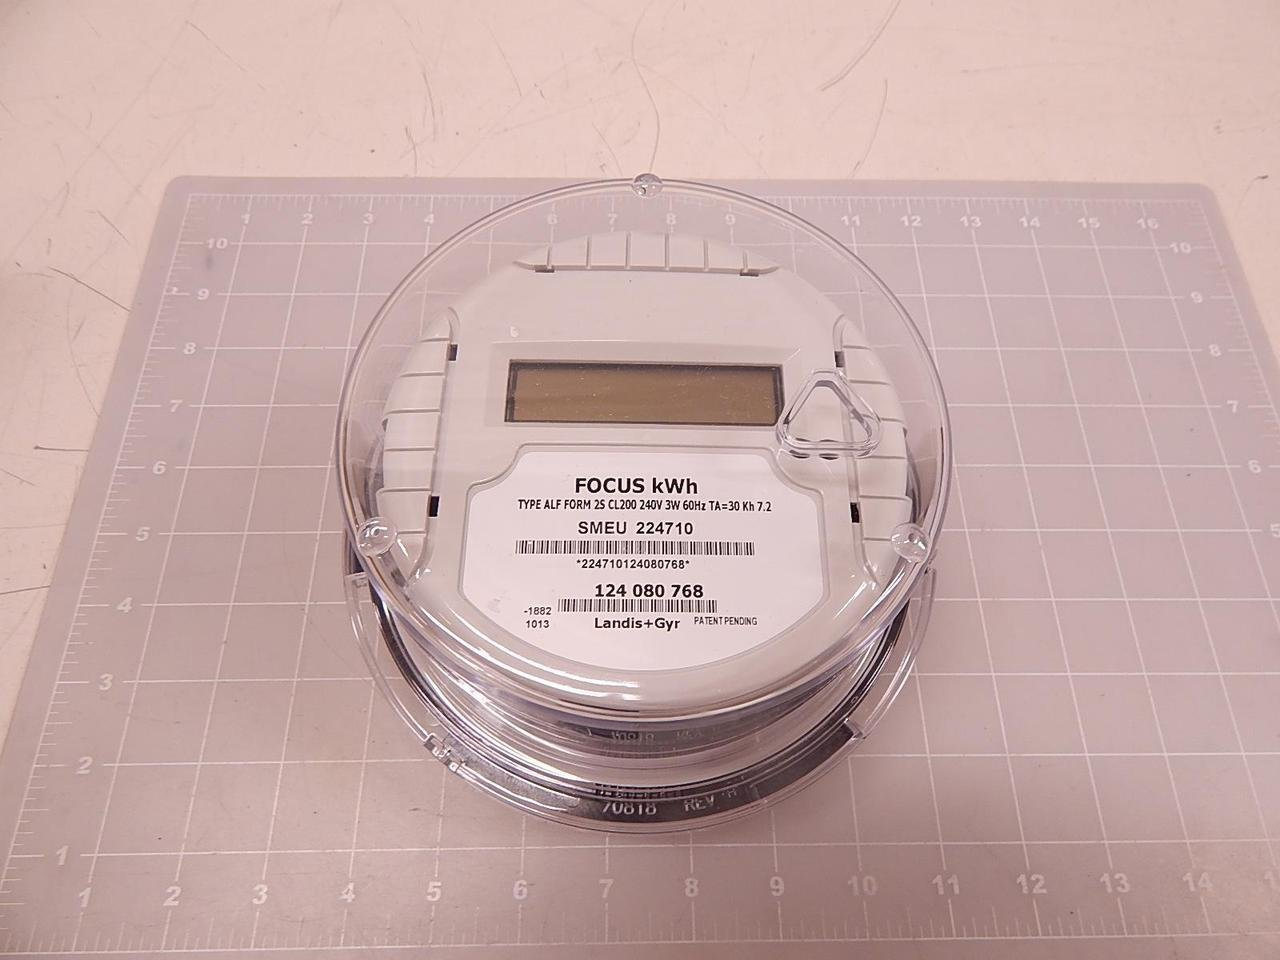 Landis Gyr Focus Kwh Electric Meter For 240 Volt Service Type Alf 2wire Or 230 Foreign Ekmomnimeter Wiring Diagram 2s